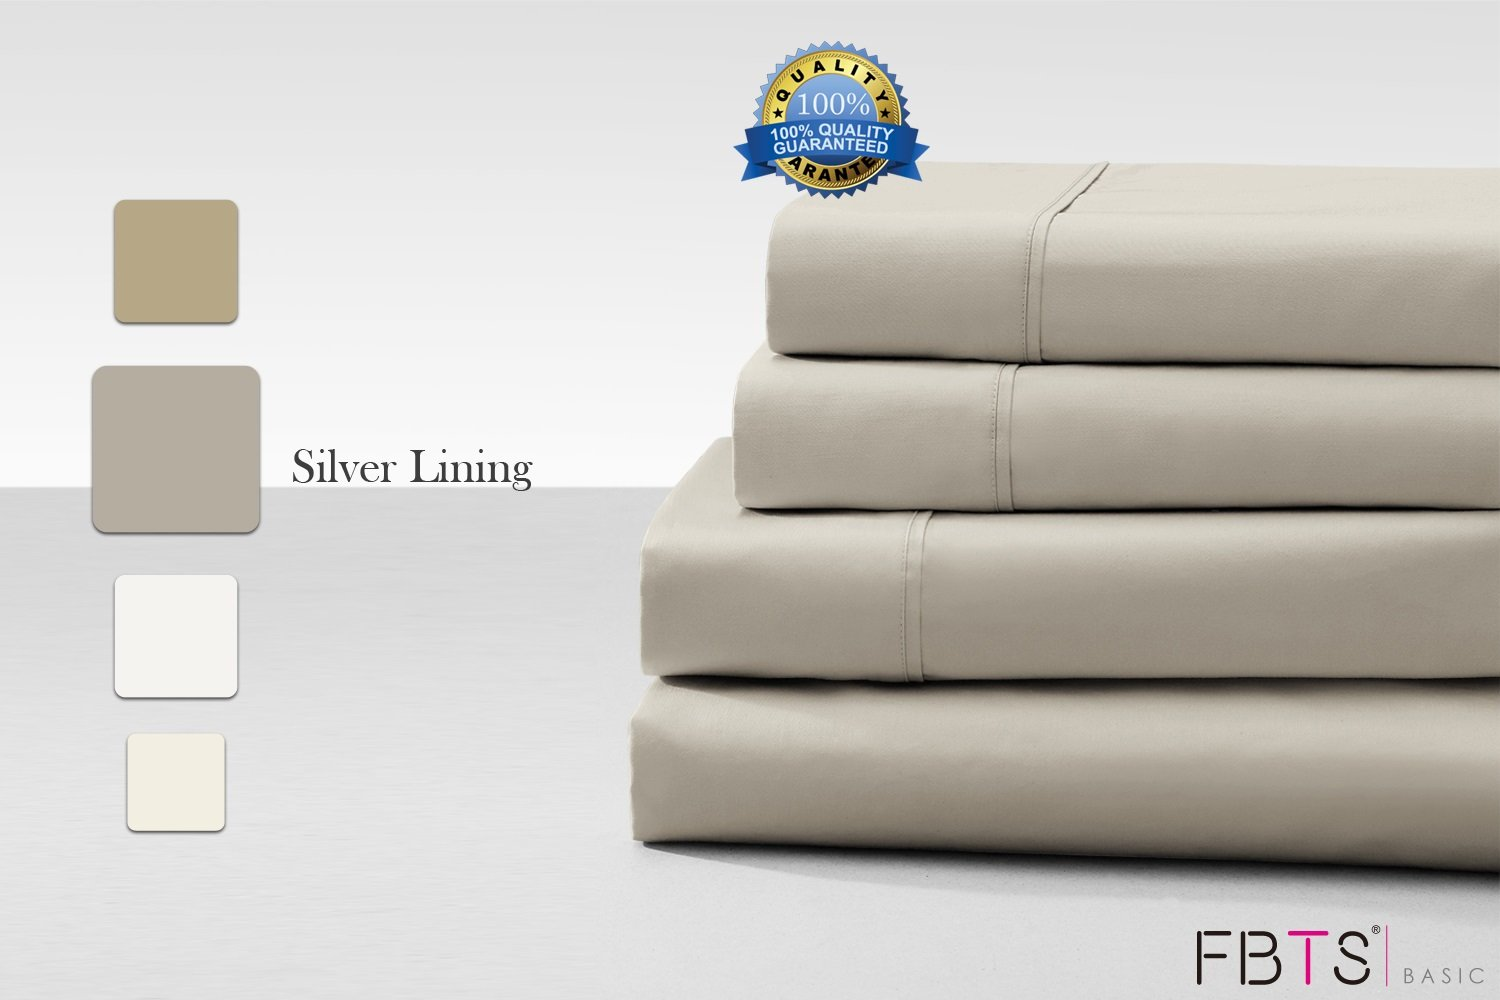 Cotton Rich Sheet Sets (California King, Grey) 800 Thread Count like Hotel Quality Luxury Bedding Sets with 18'' Deep Pockets 4 Piece Breathable Super Soft Bed Sheets by FBTS Basic